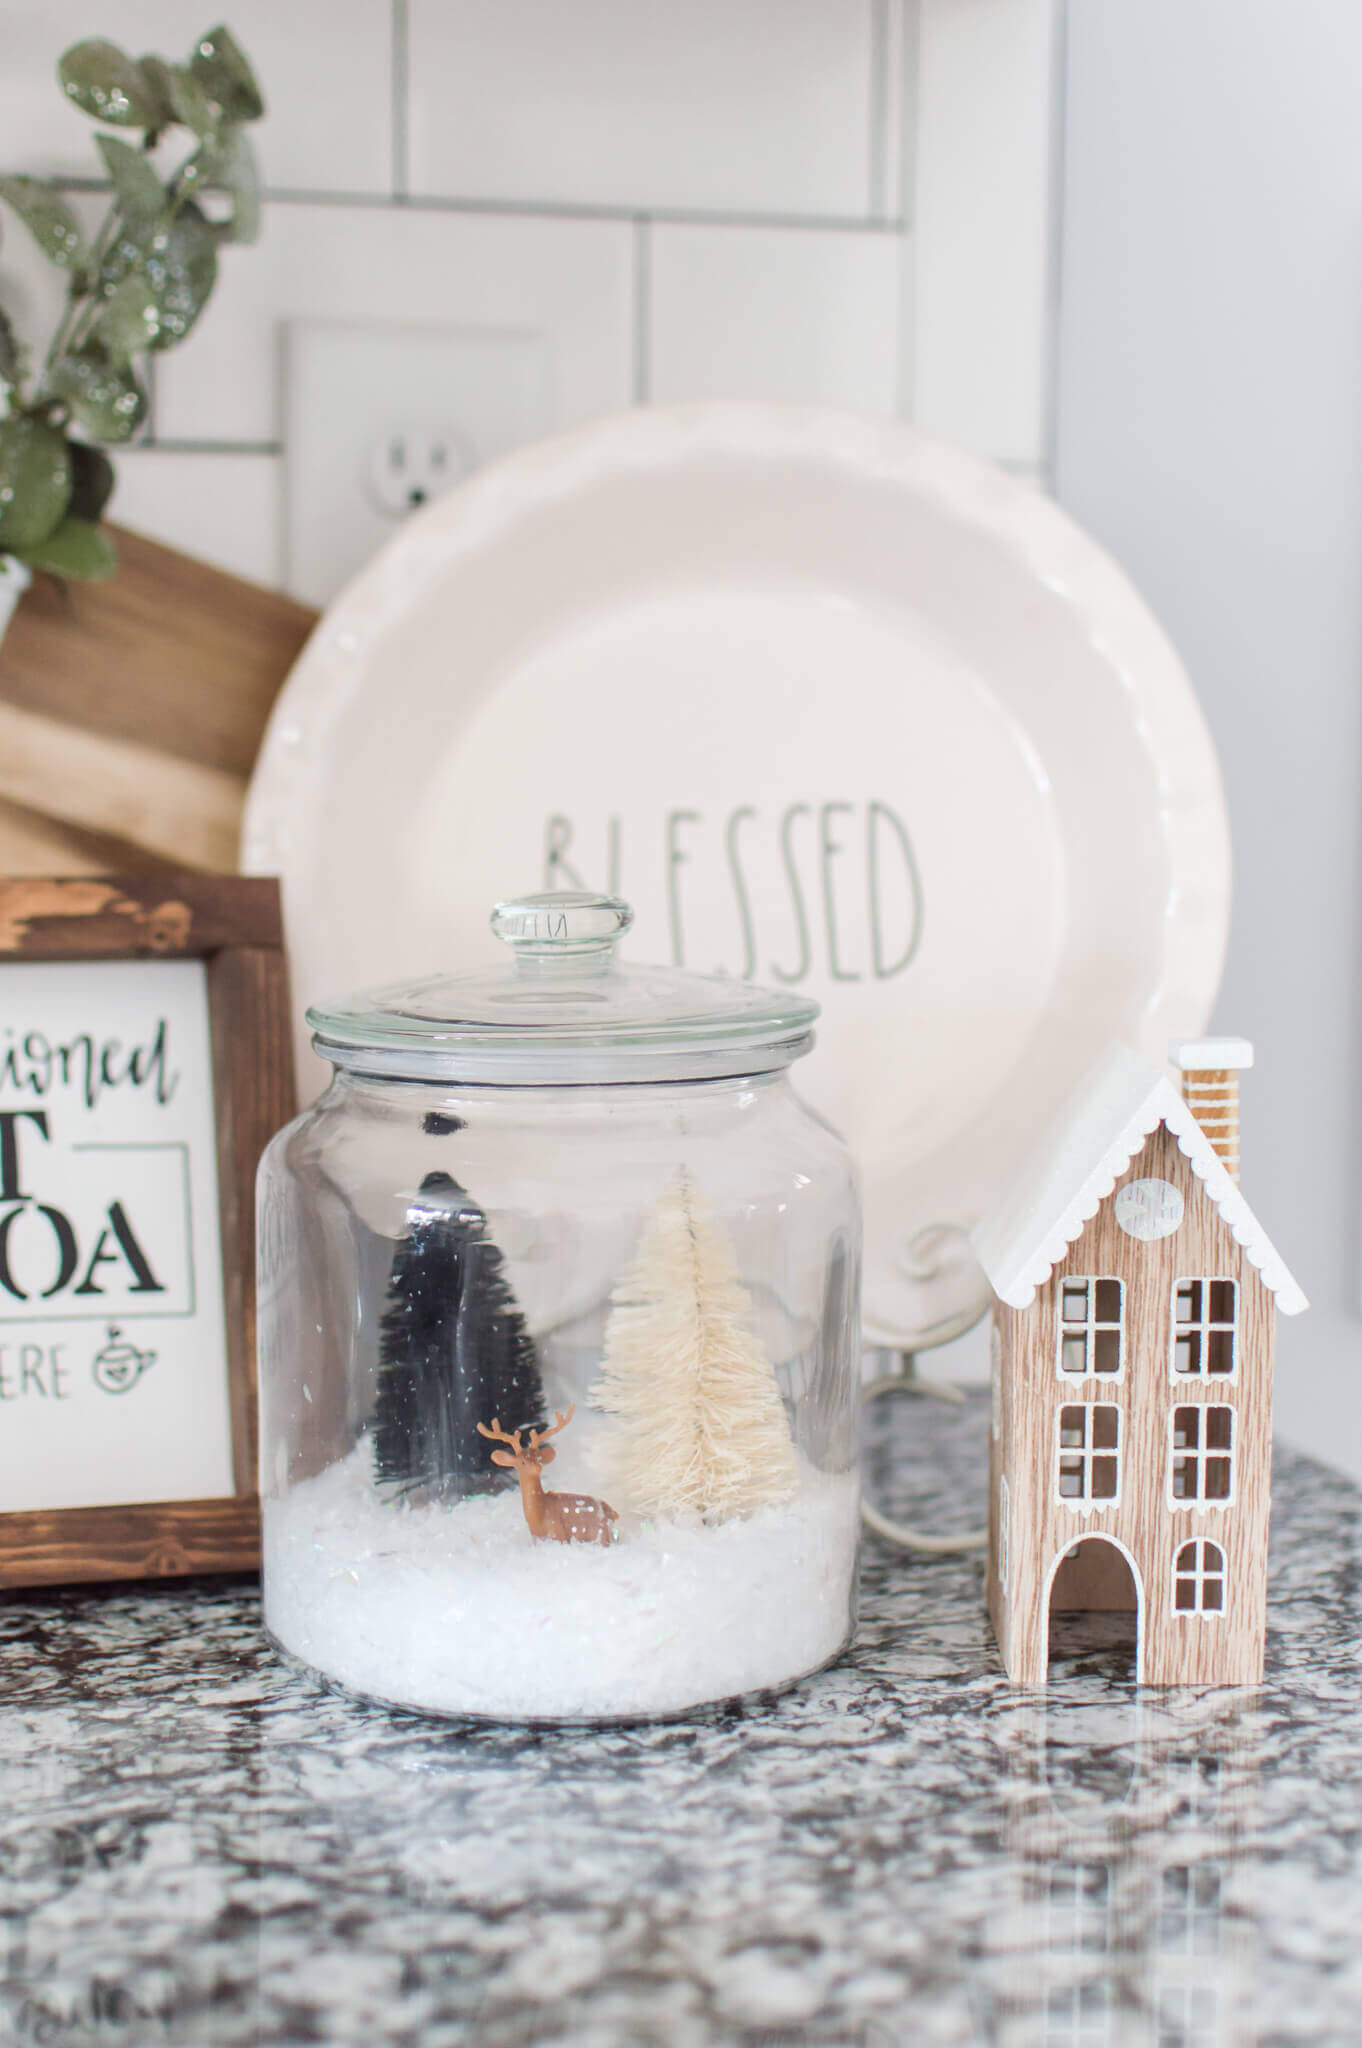 DIY Snow Globes with Glass Jars